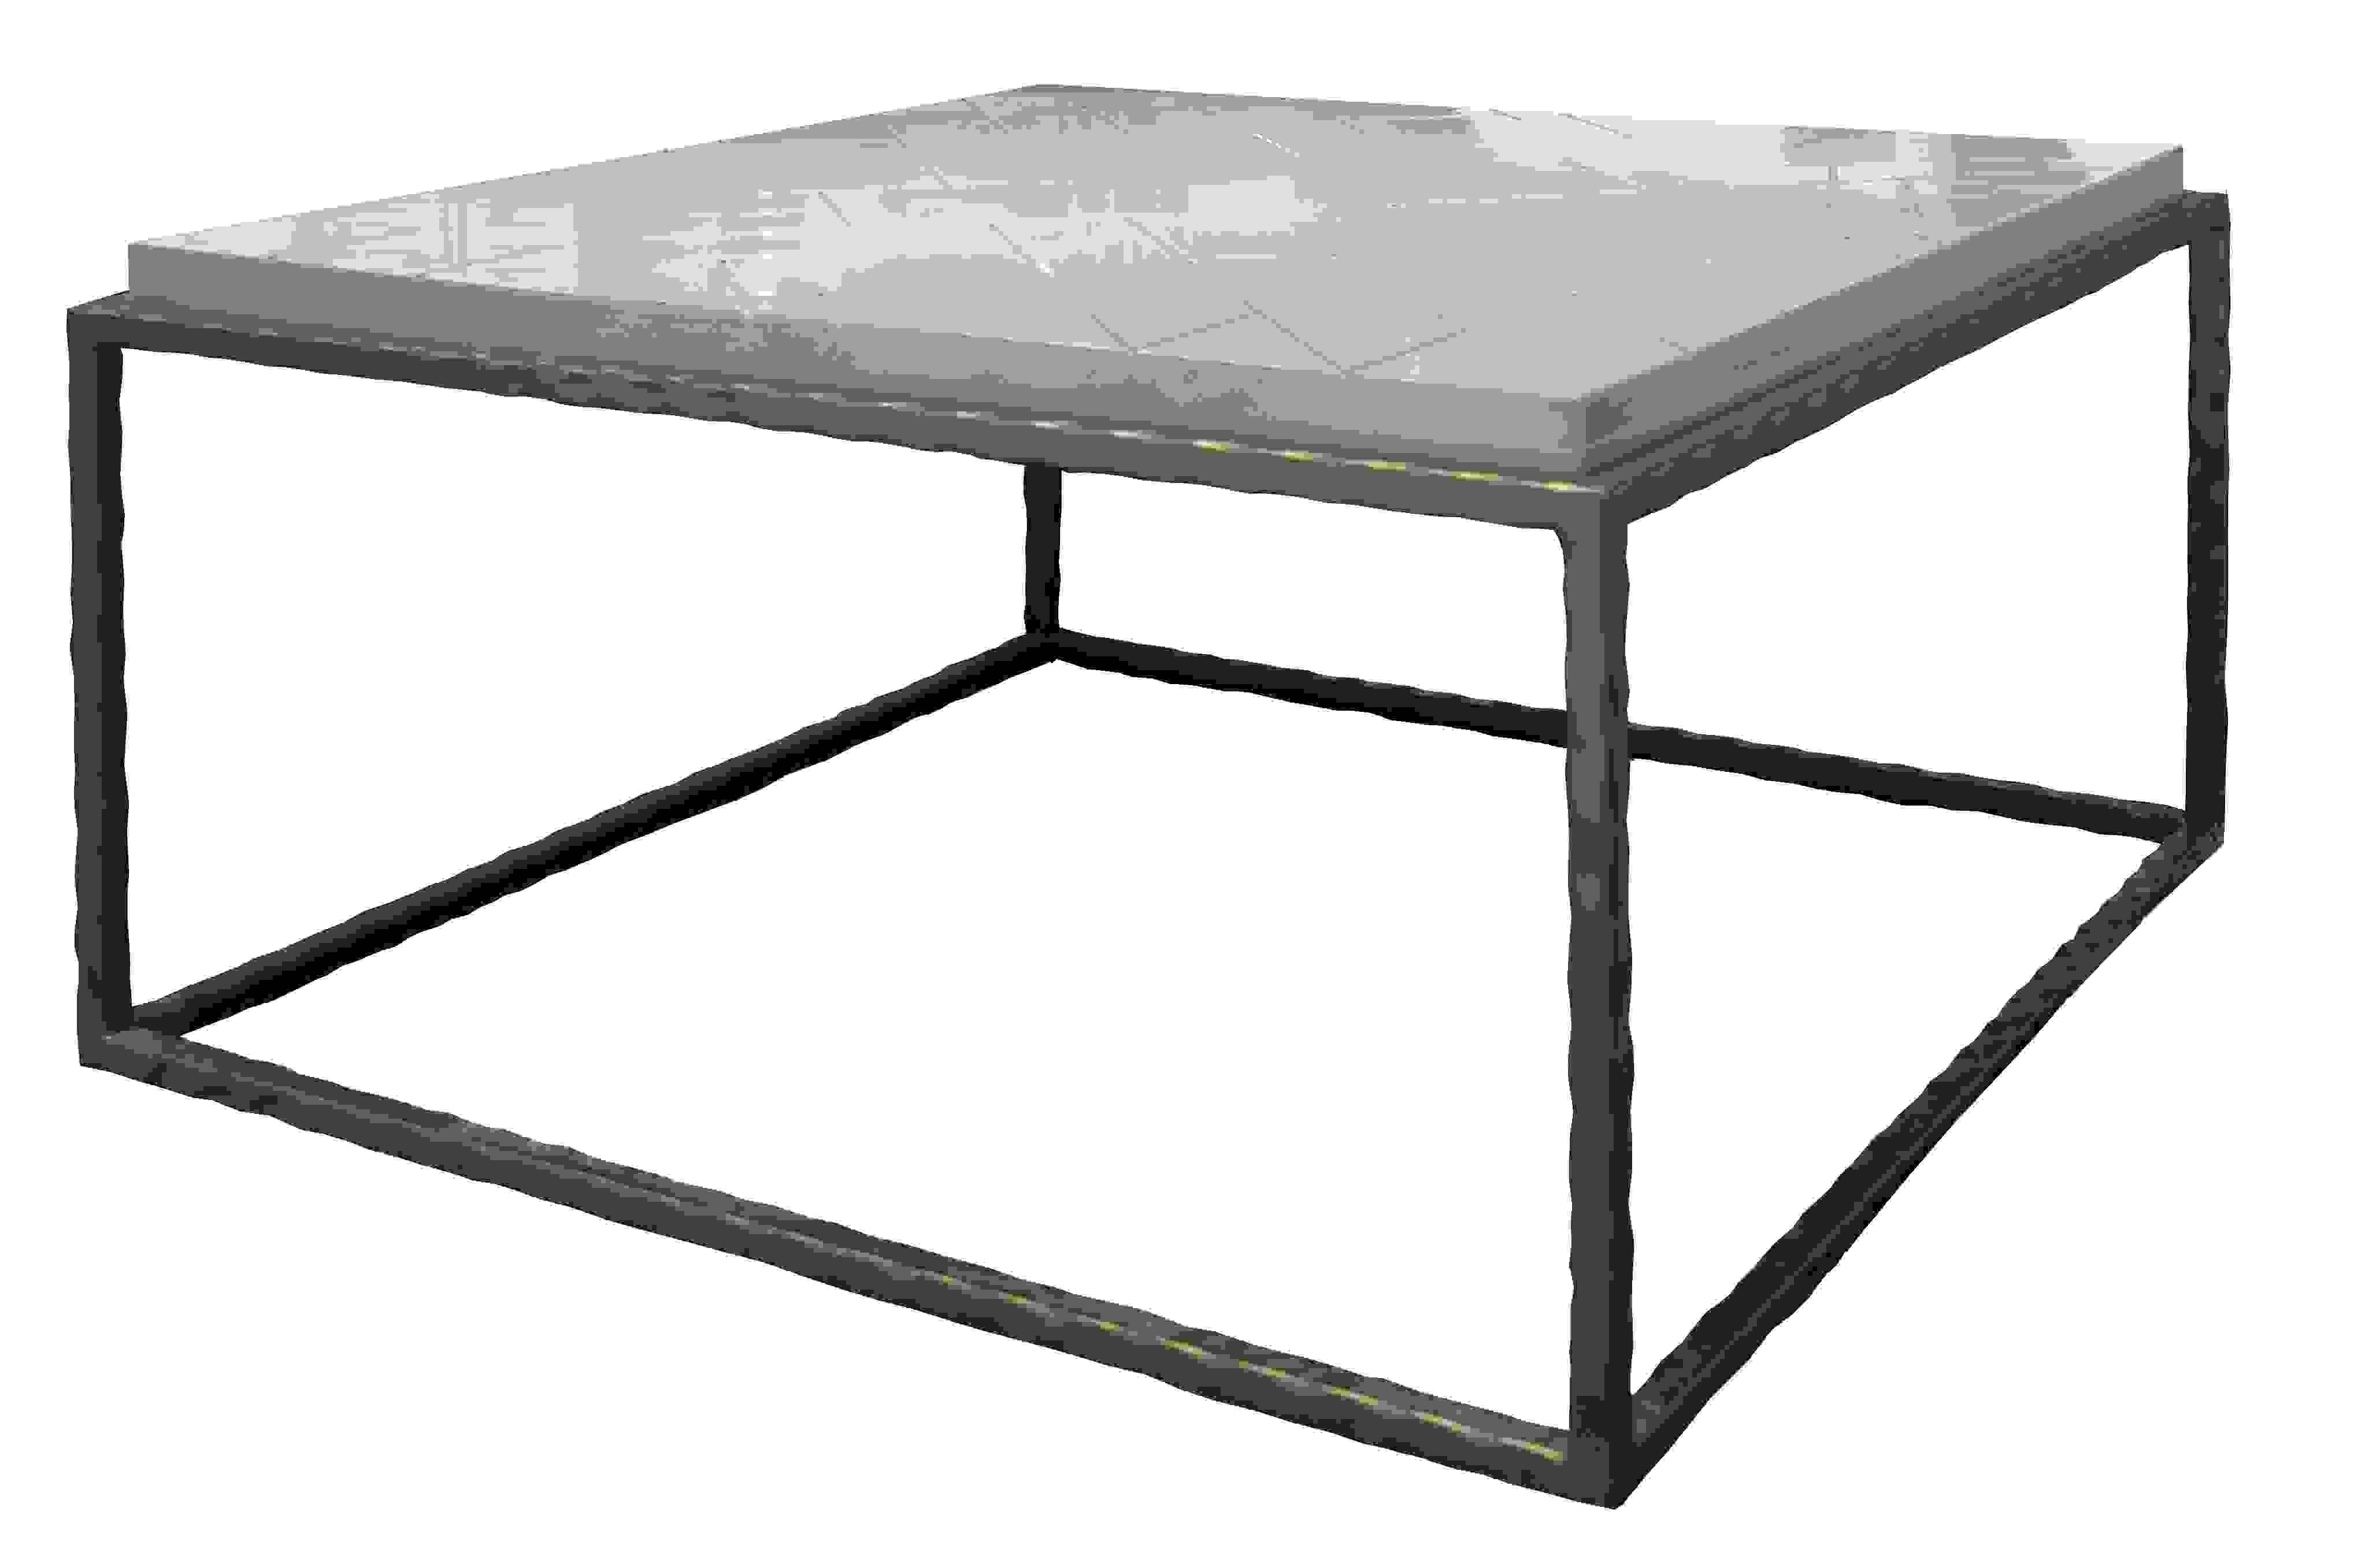 Guadarte_Century_Coffee_table_ H550207.jpg